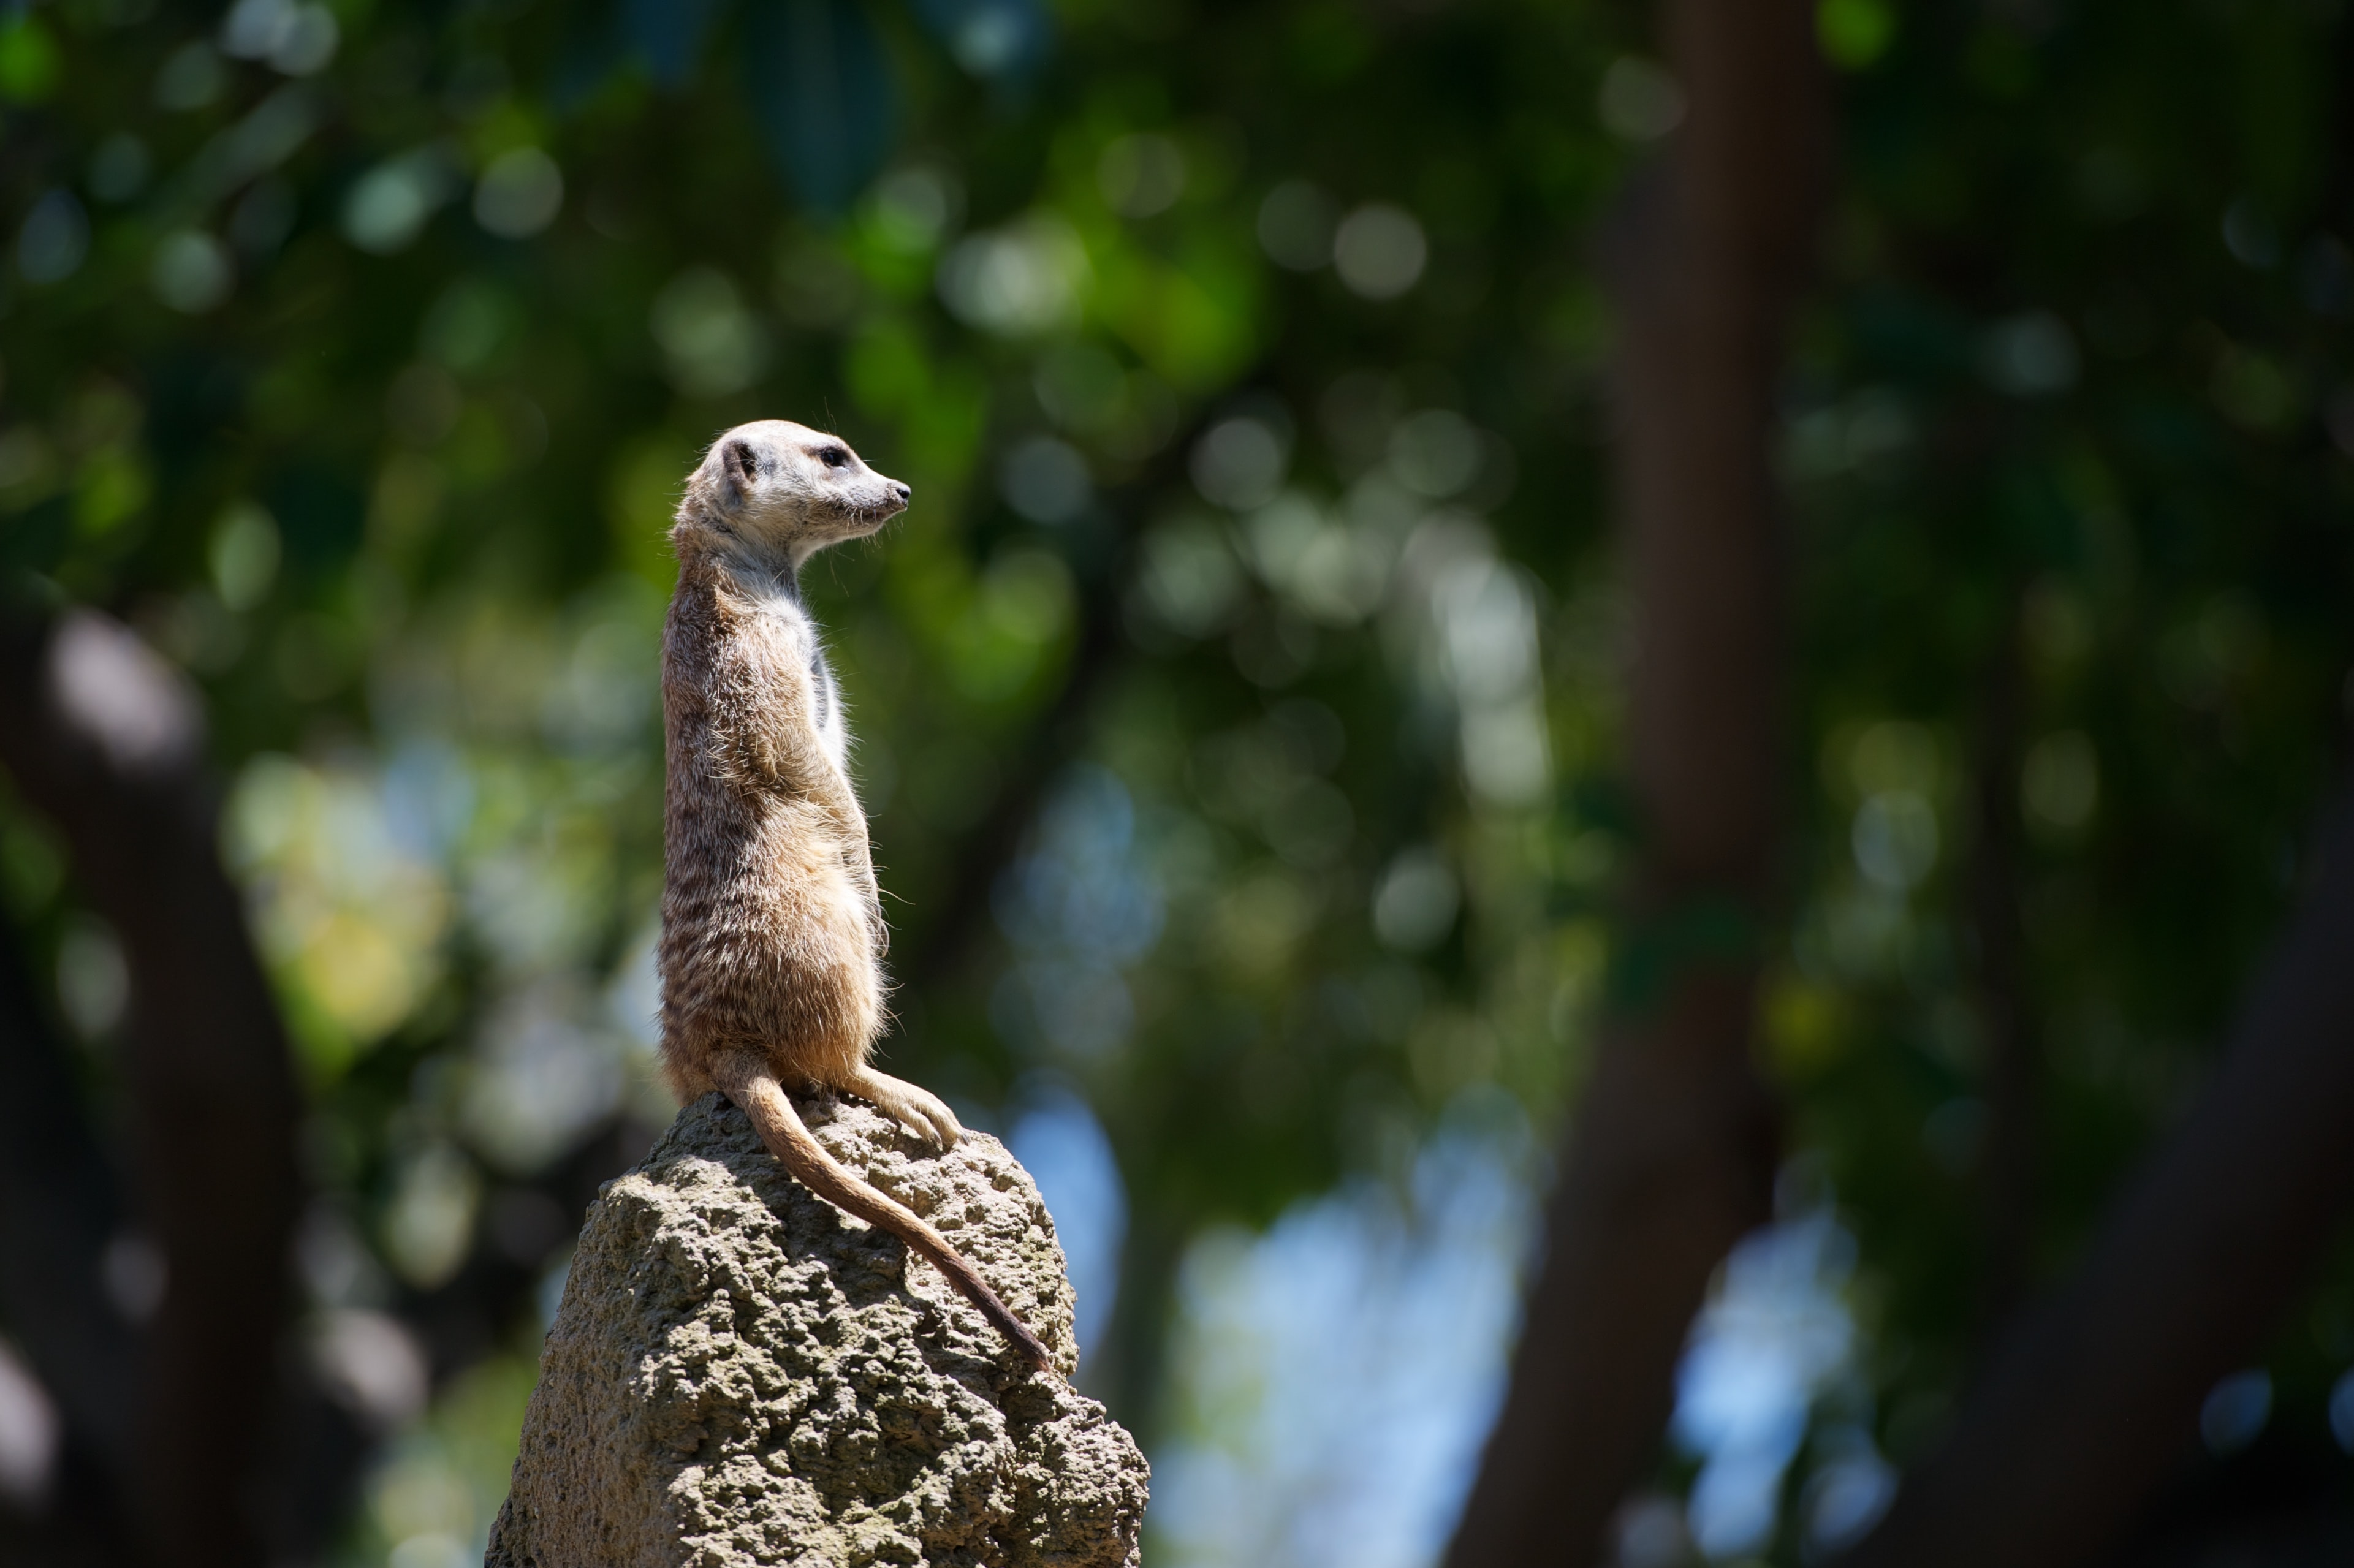 Meerkat looking ahead while on top of a rocky structure